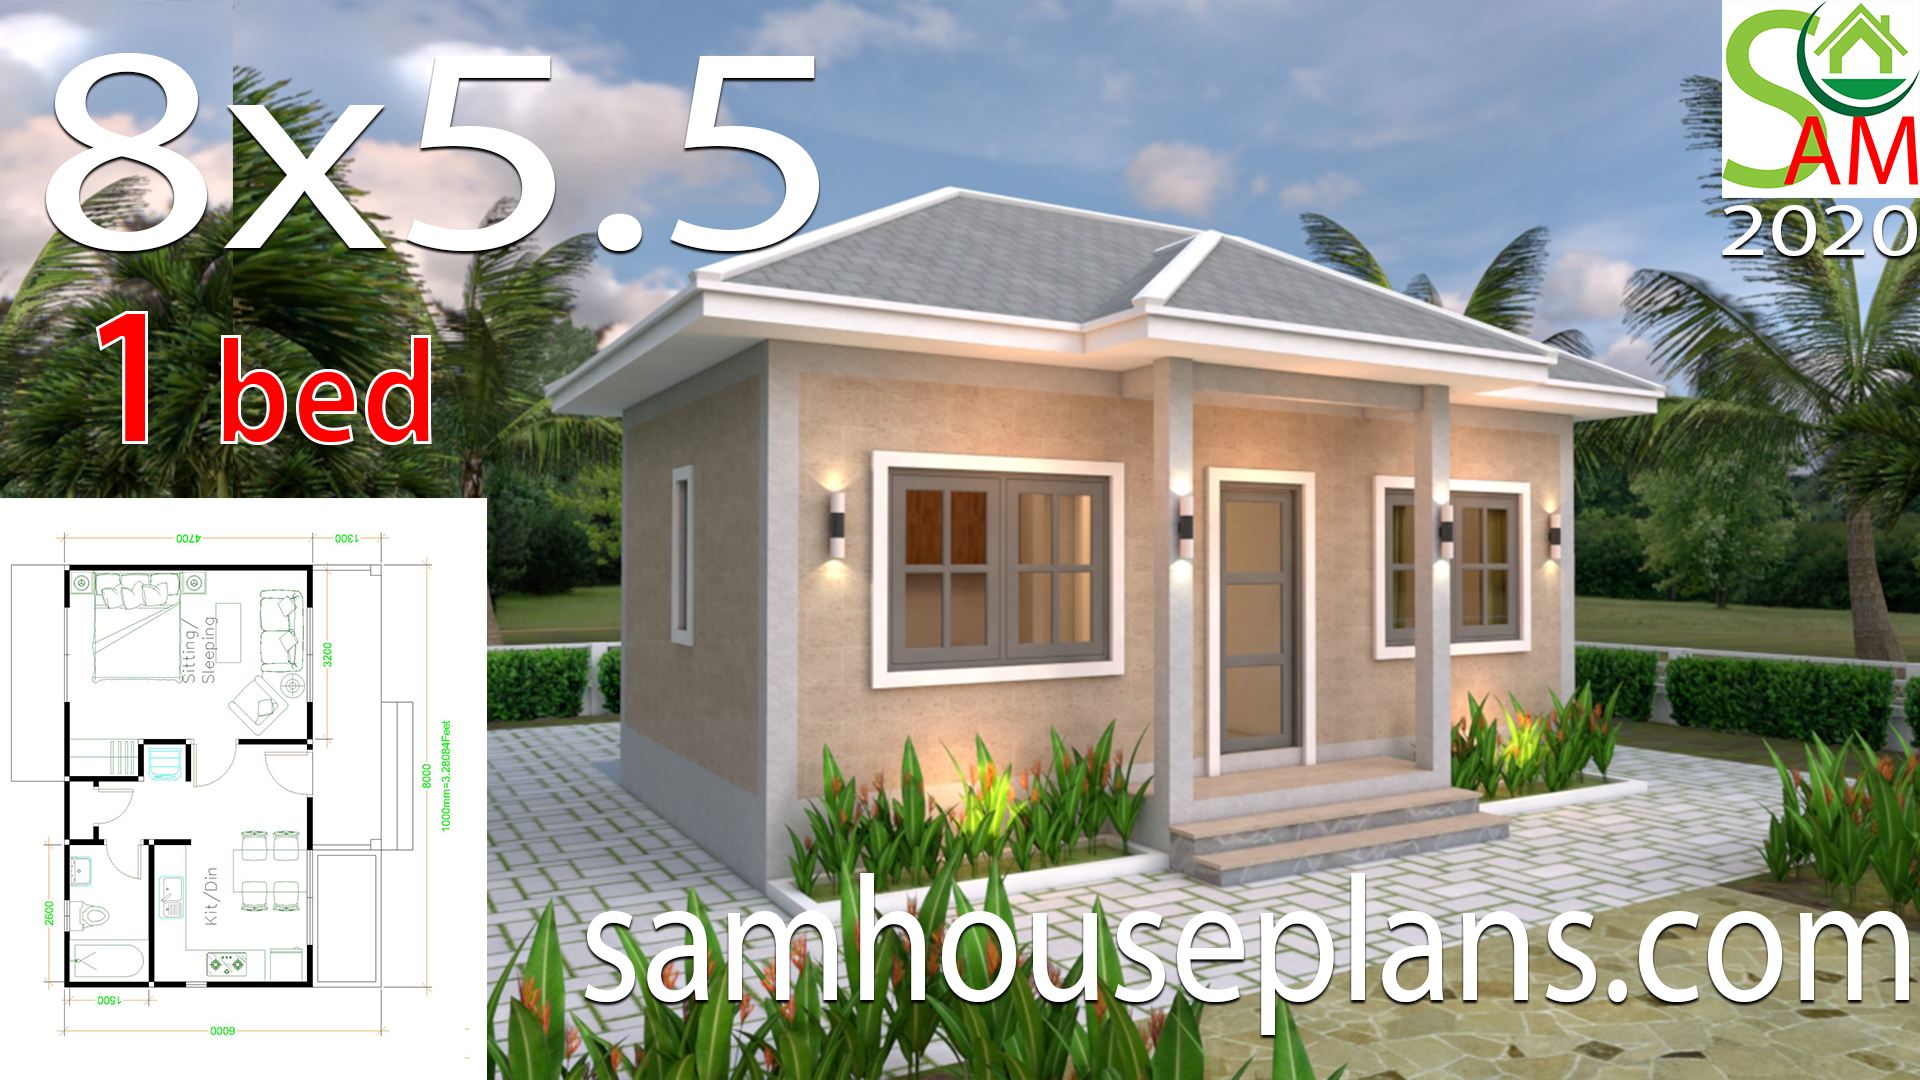 House Plans 8x5 5 With One Bedrooms Gross Hipped Roof Samhouseplans